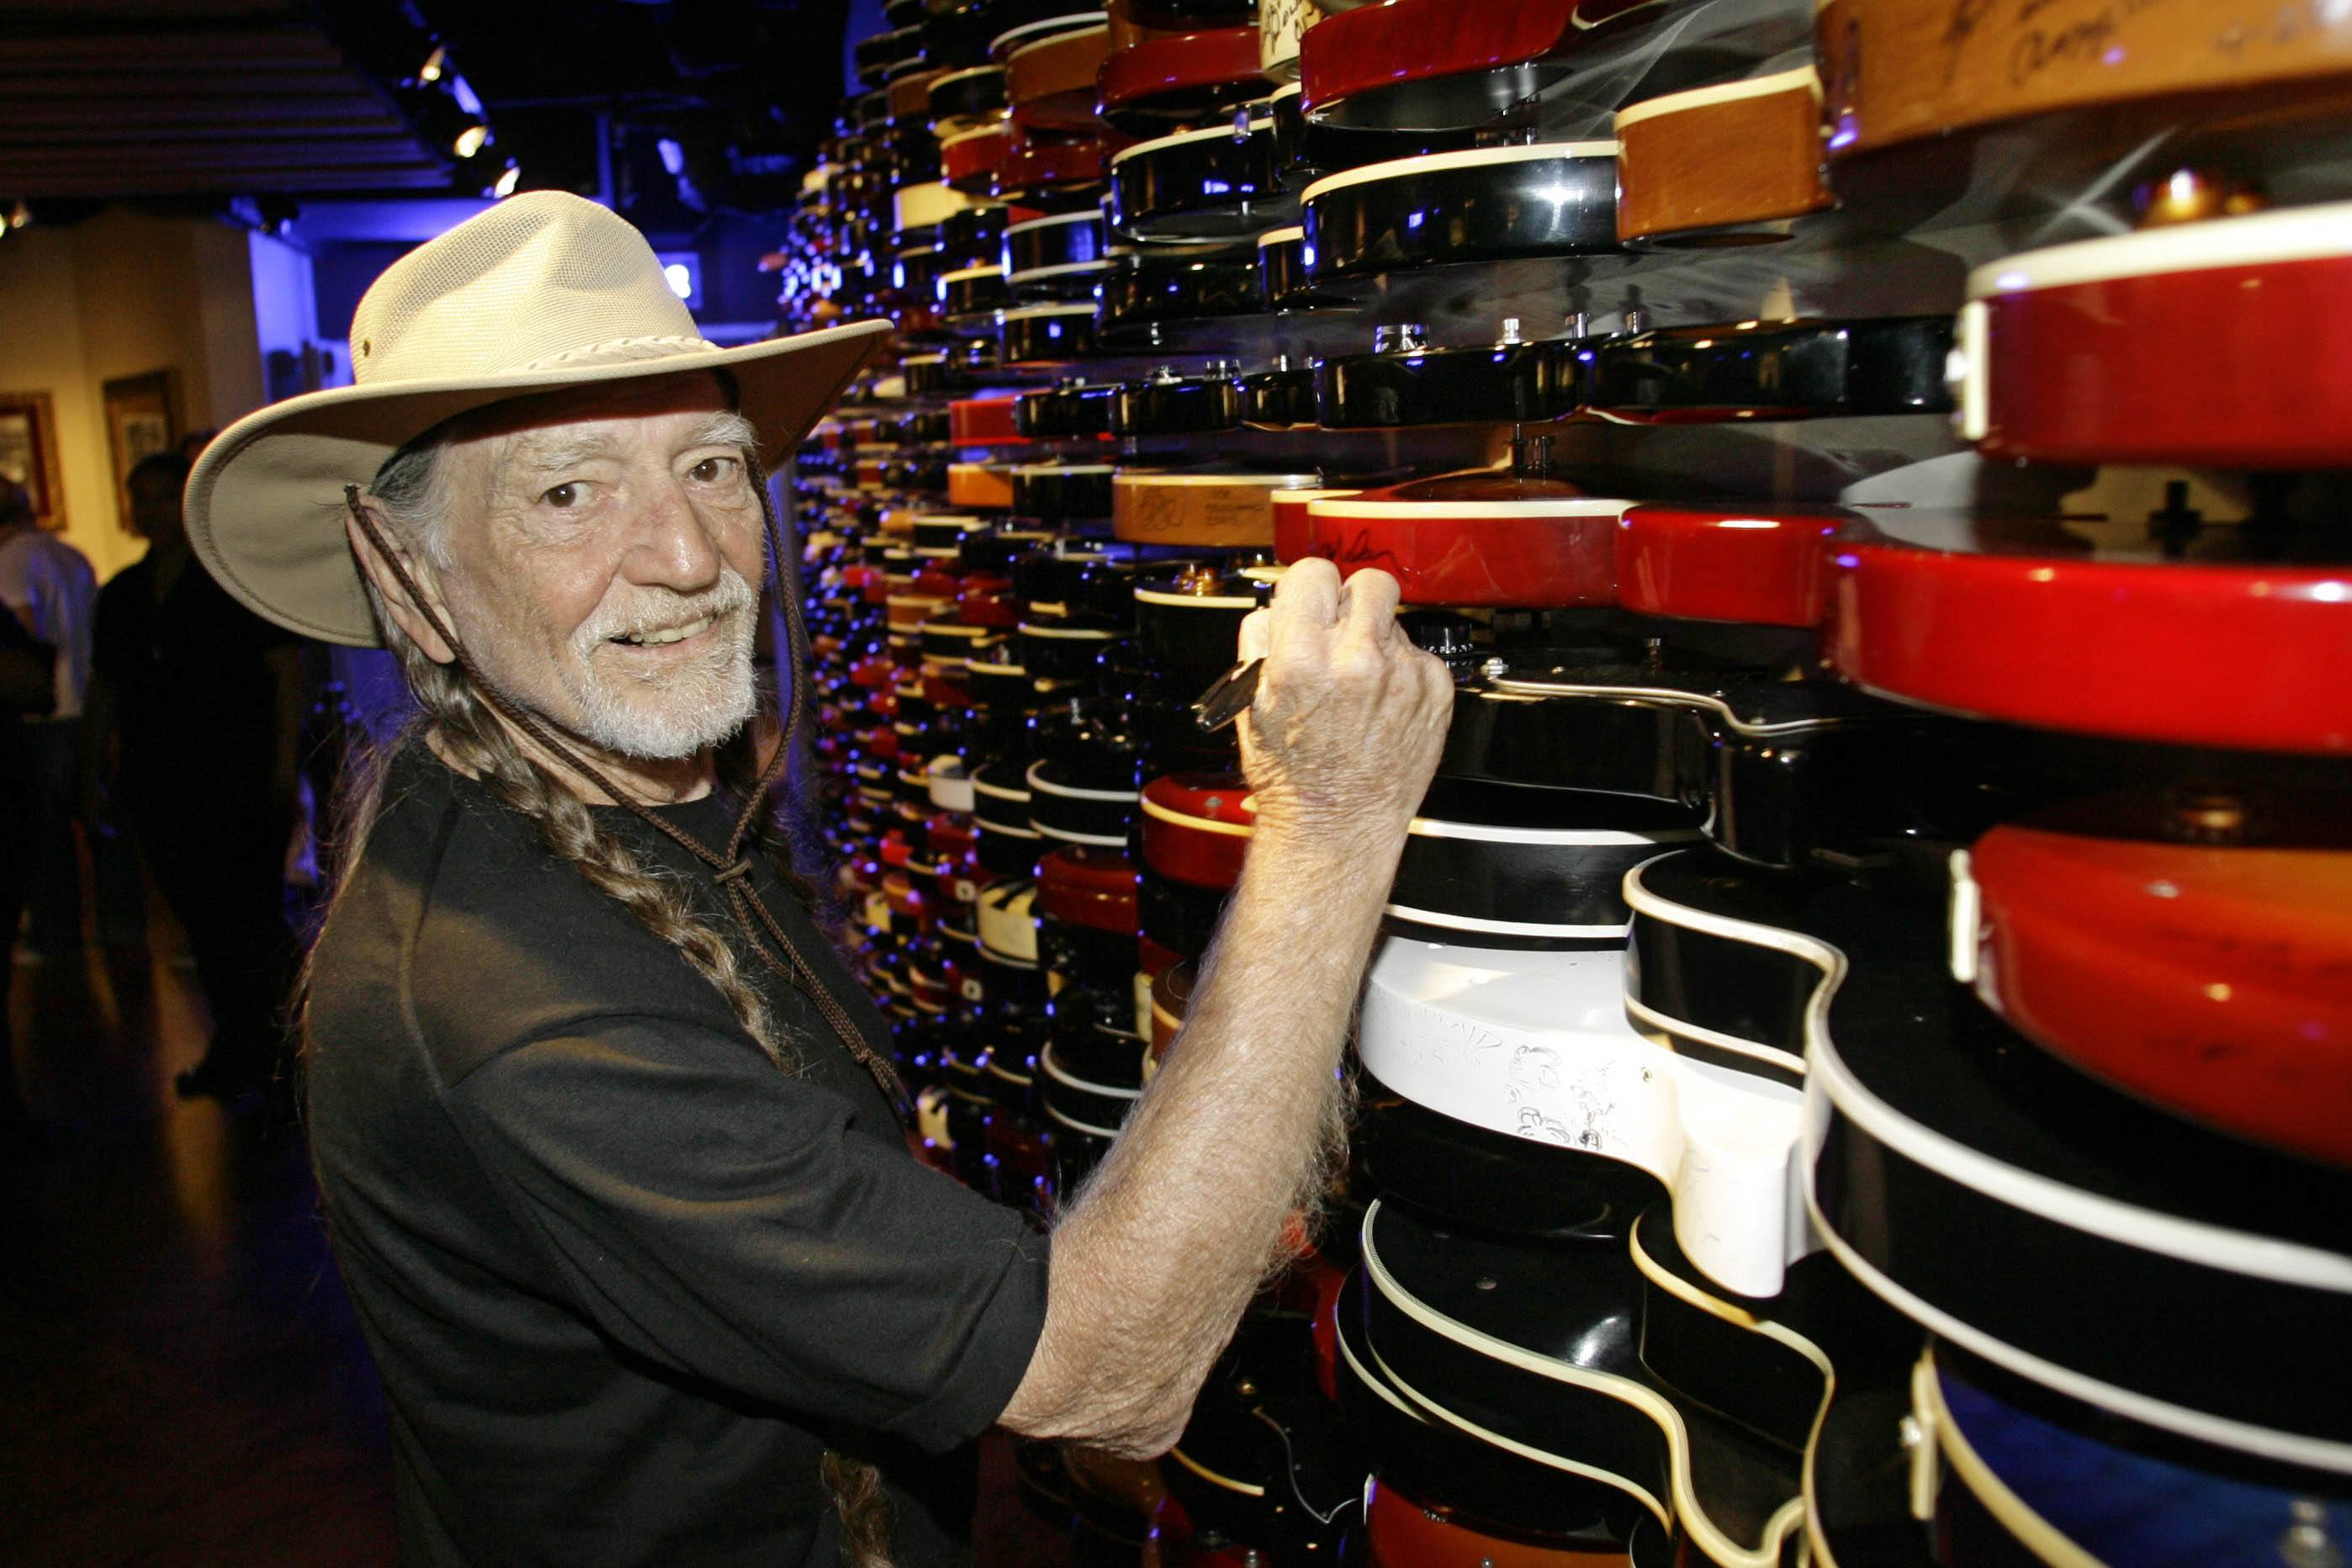 Image of Willie Nelson autographing guitars